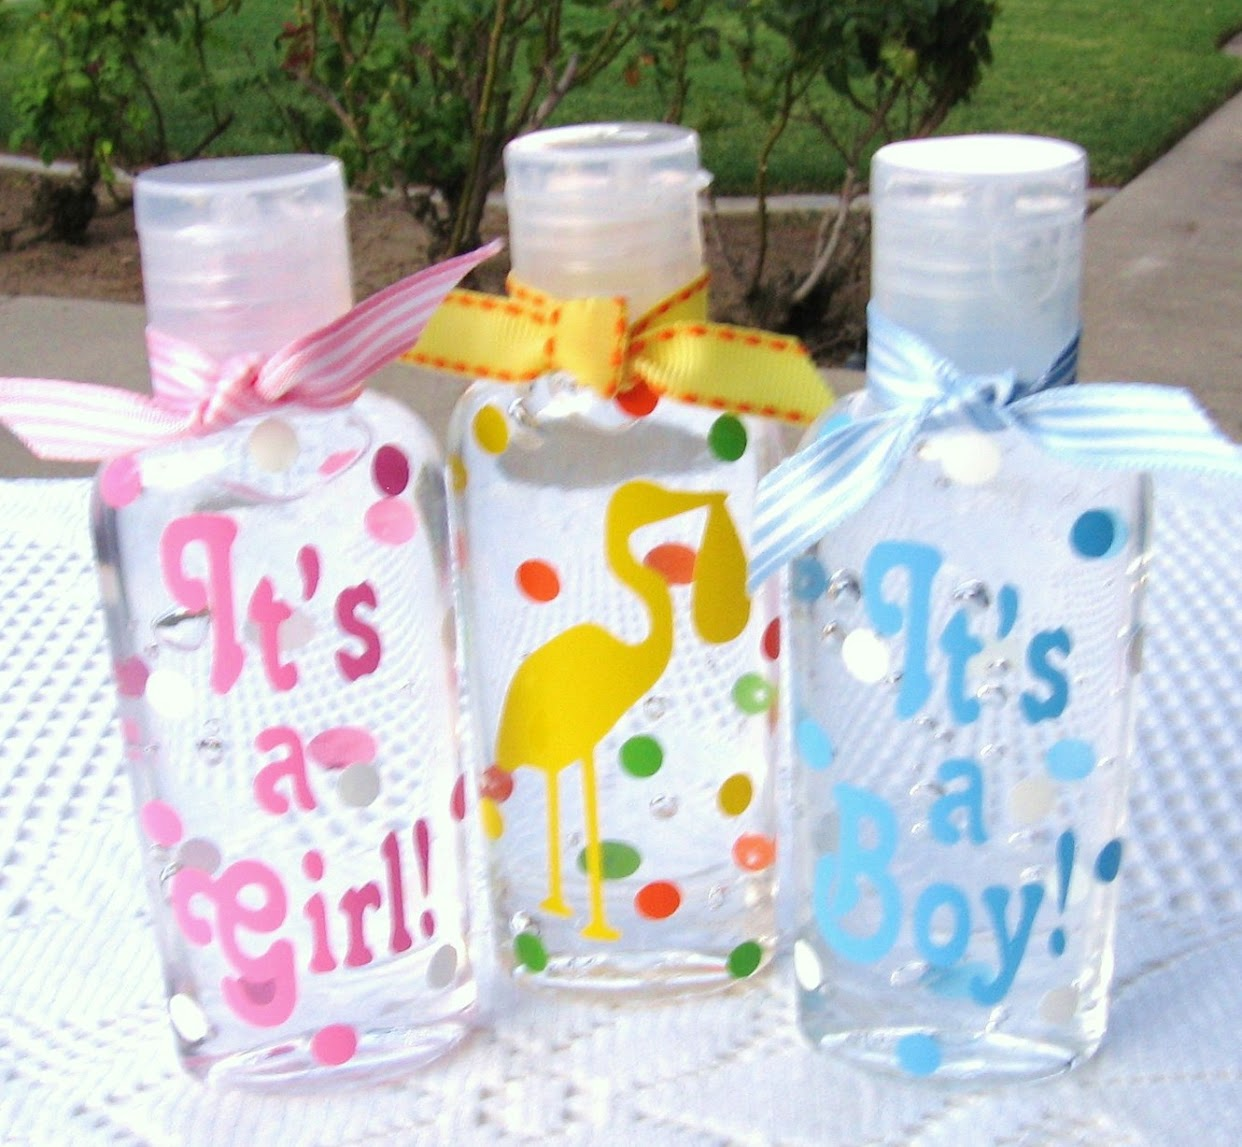 Trends for Images: Baby shower ideas, post 7